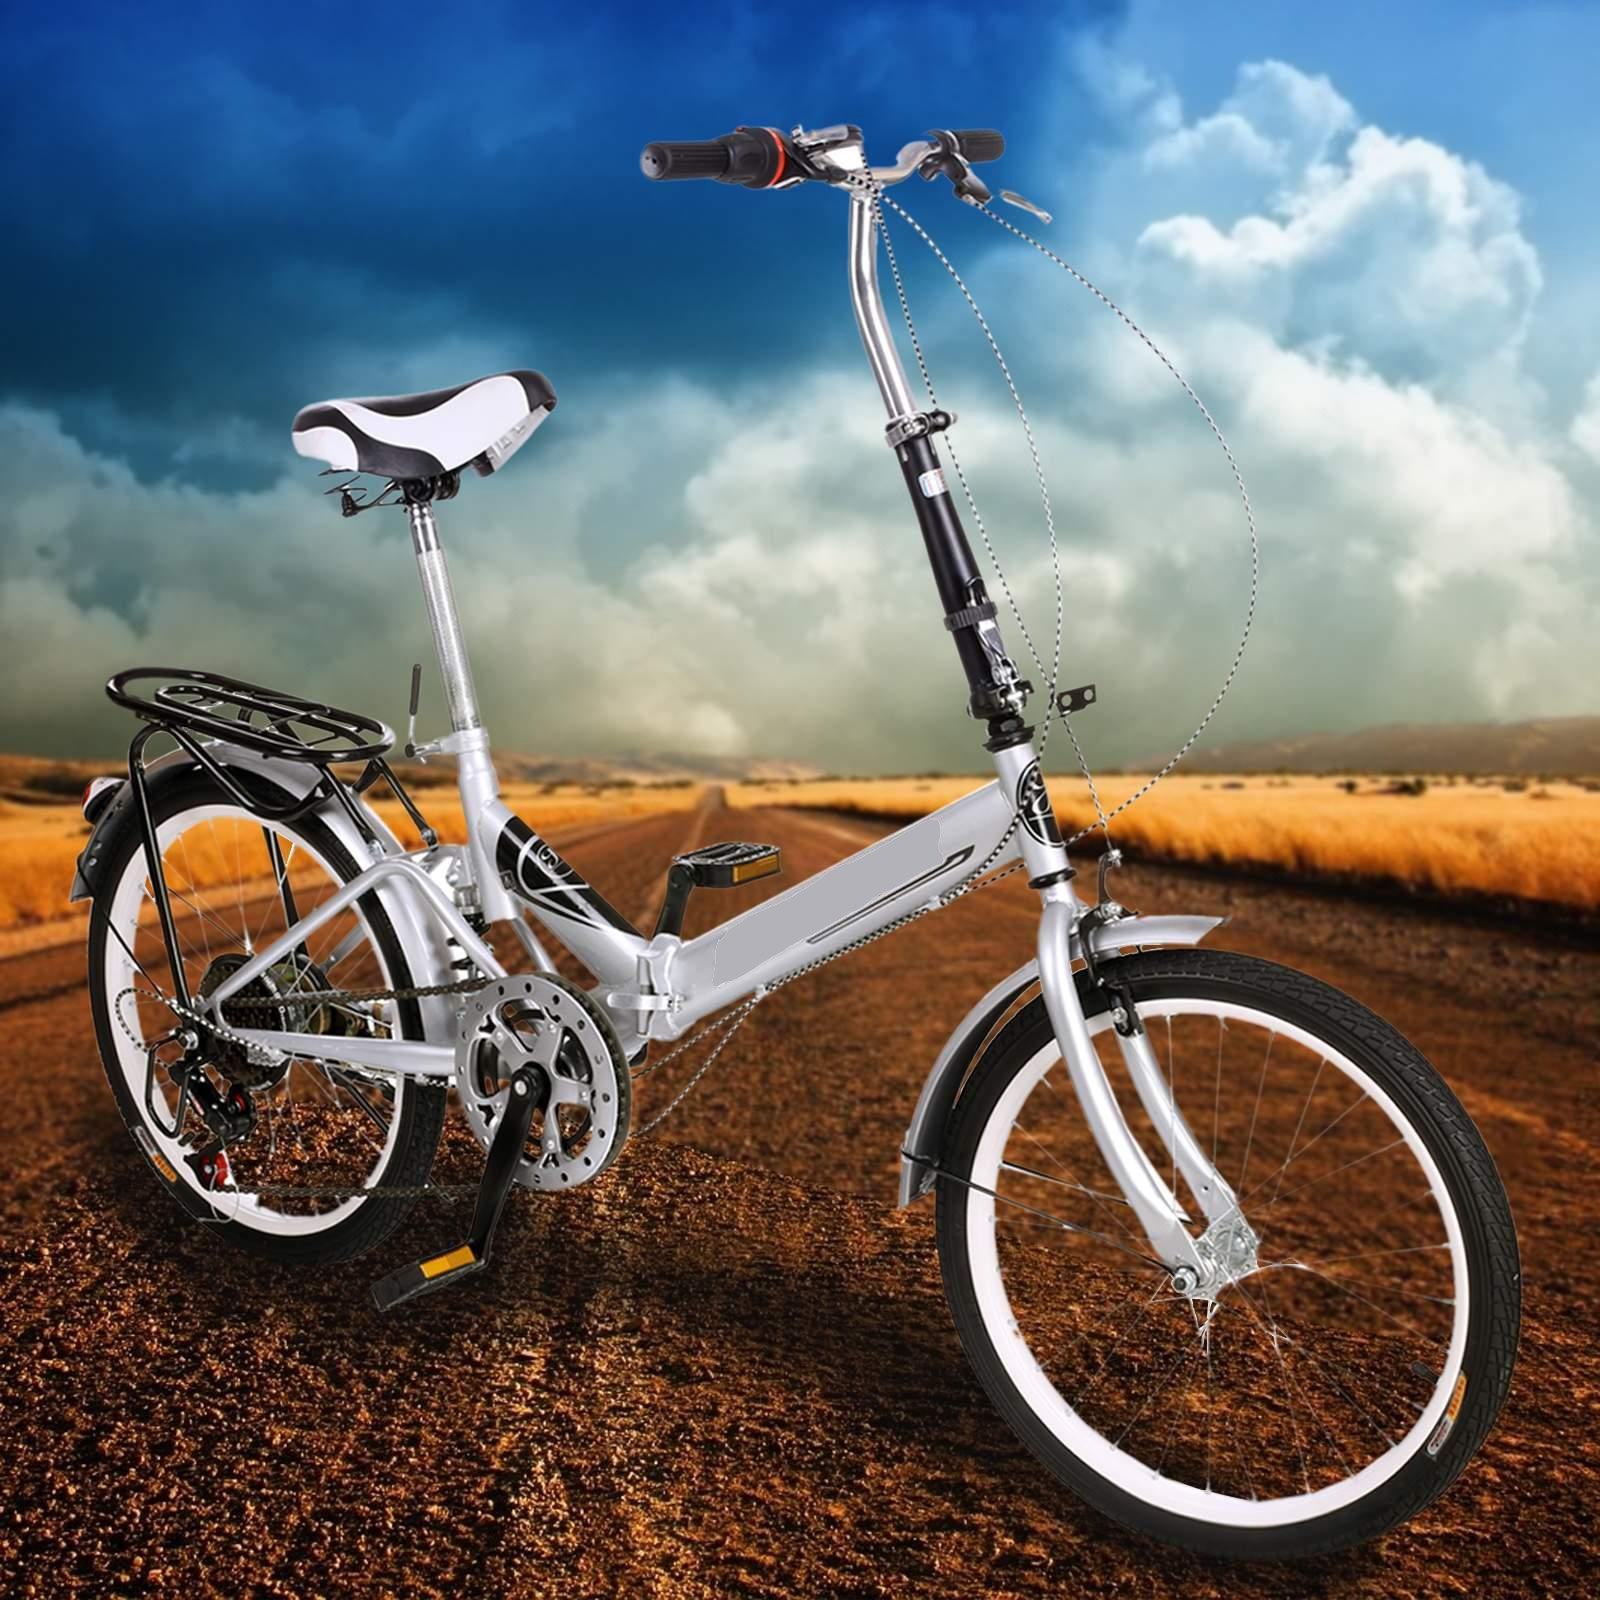 Utheing 20inch Wheel Folding Bike 6 Speed Mountain Bicycle Cycling Steel Frame Double Disk, Silver by Utheing (Image #2)